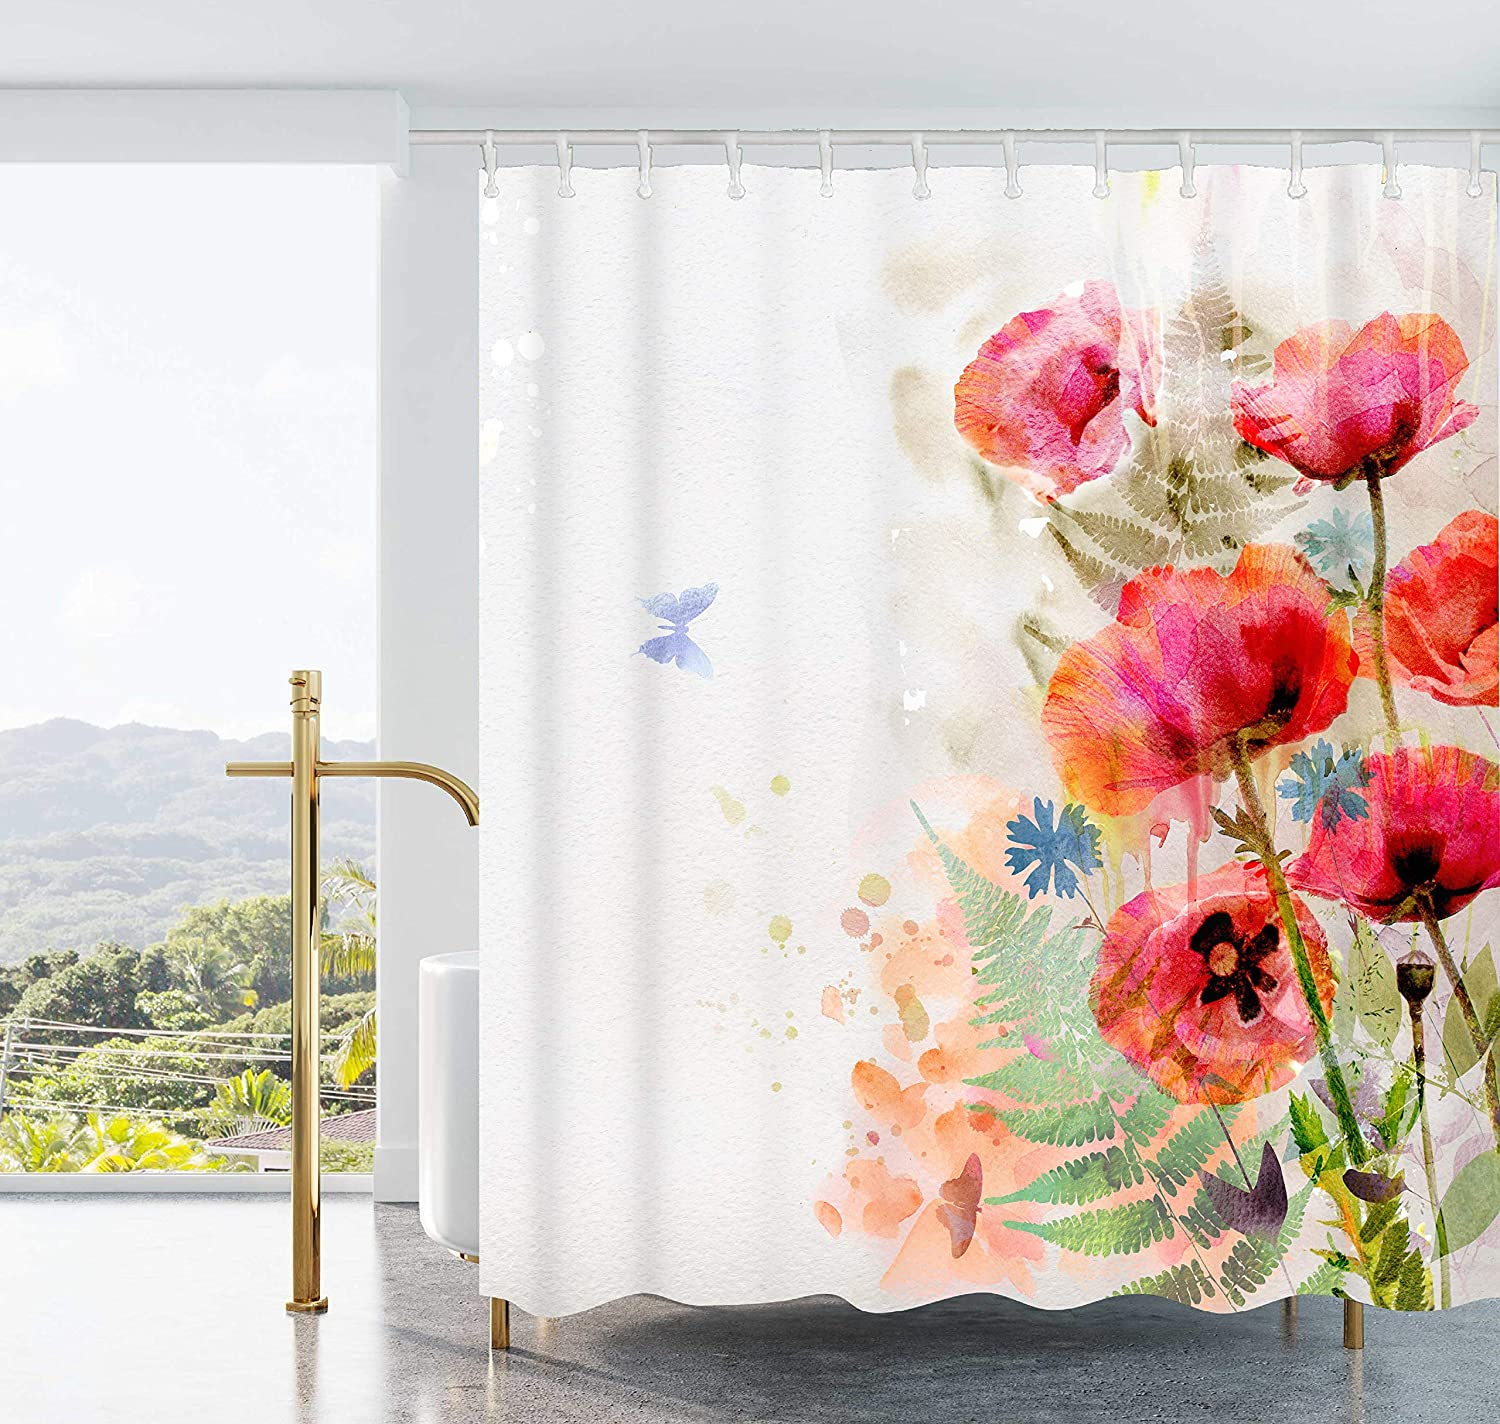 Ao blare Flower Shower Curtain Watercolor Red Poppies Fern-Leaf Polyester Fabric Shower Curtain With Hooks 72X72 Inches